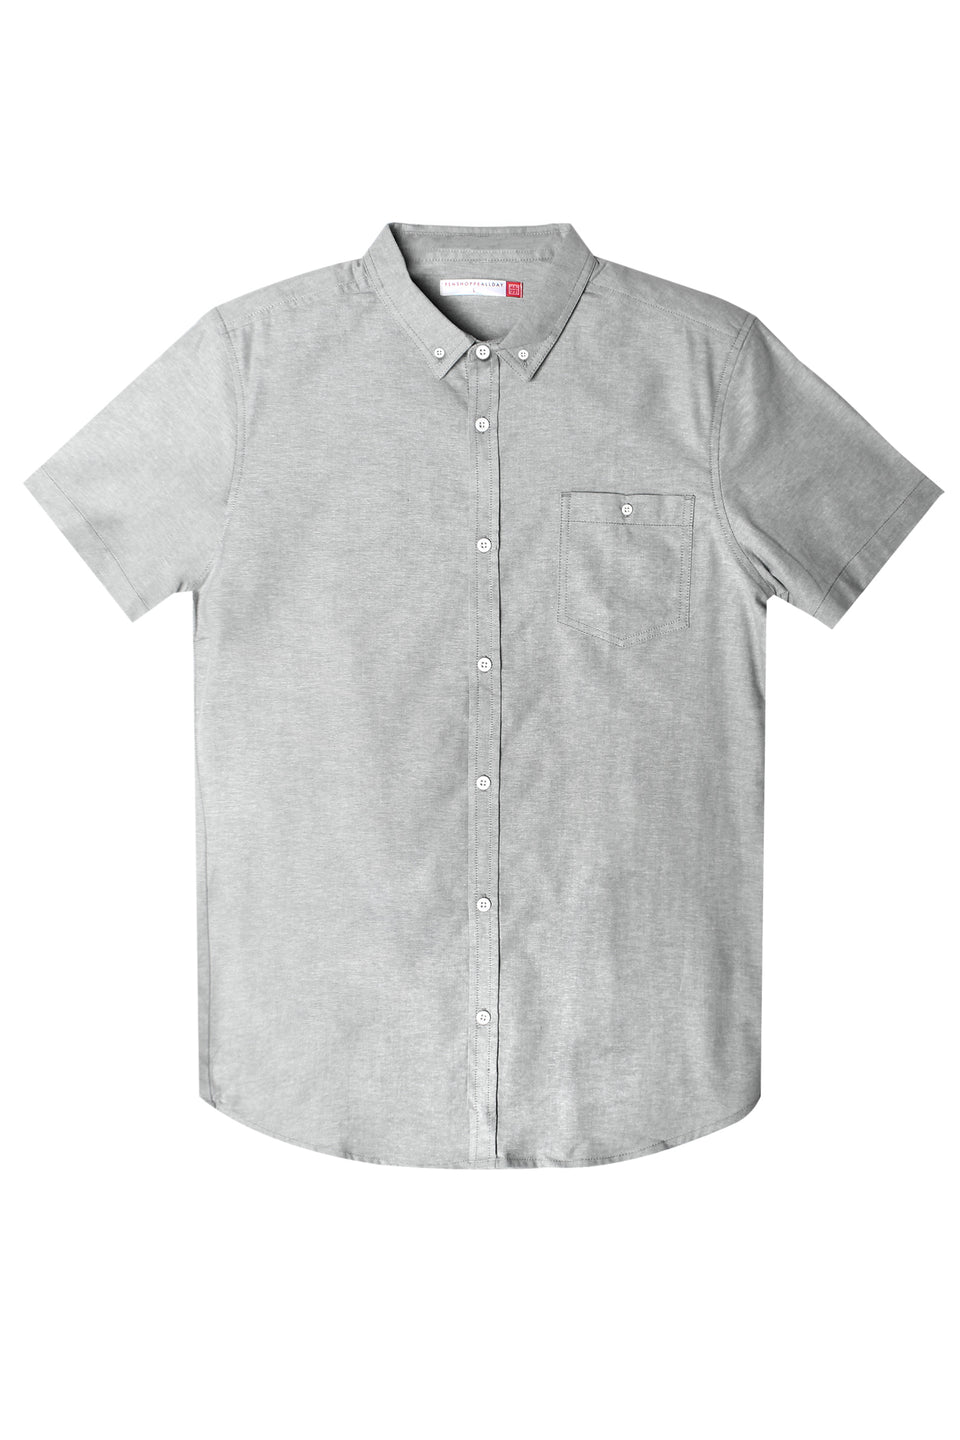 Men's Oxford Shirt With Button-Down Collar